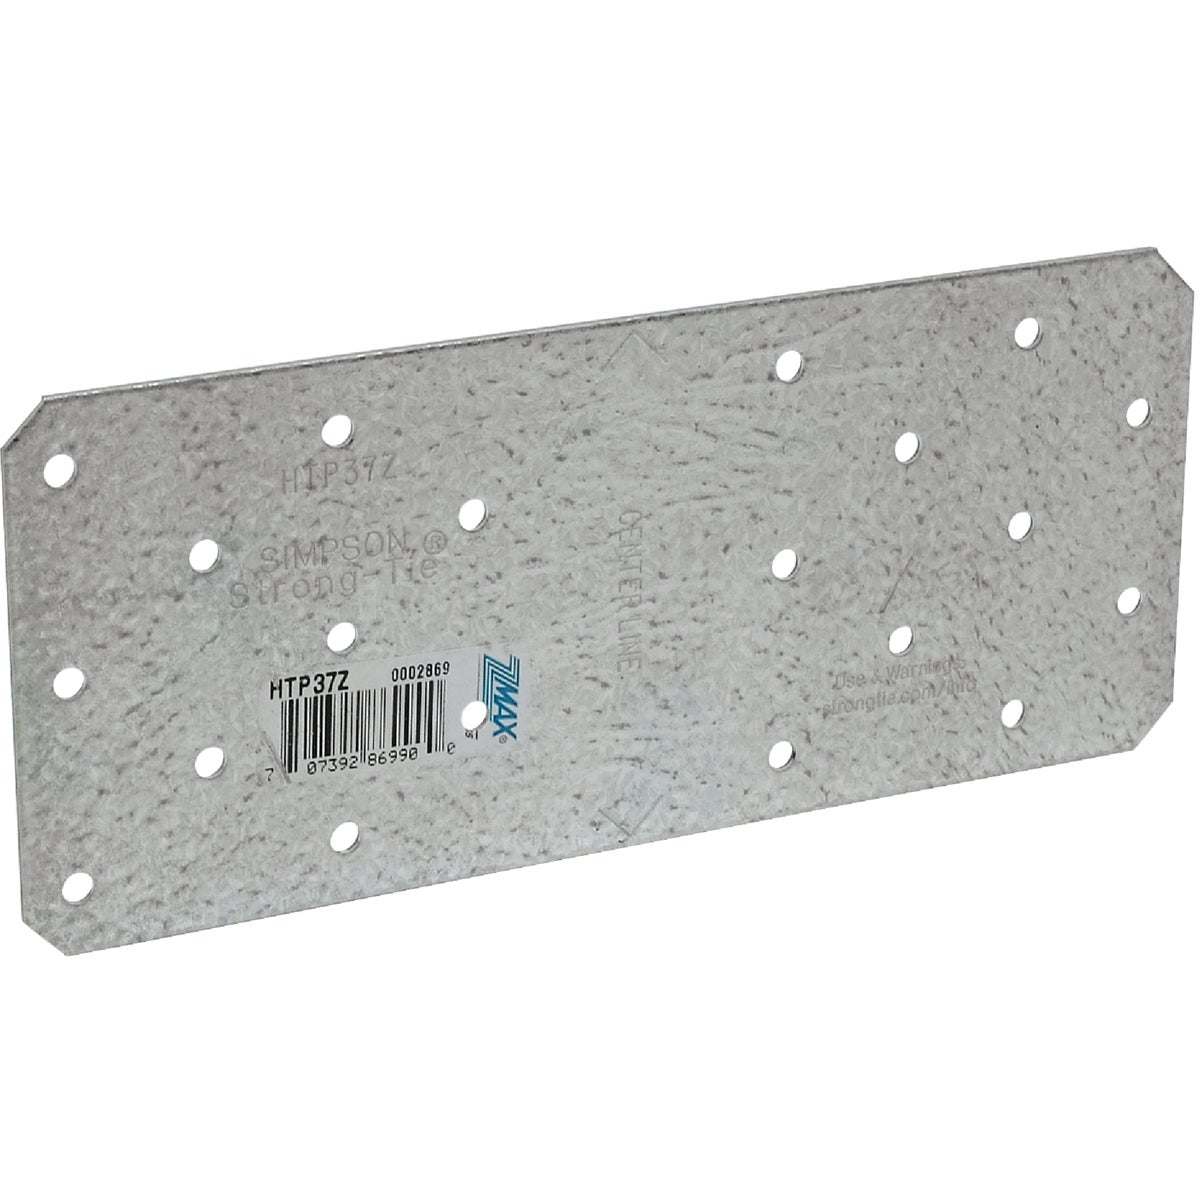 HEAVY TIE PLATE Z-MAX - HTP37Z by Simpson Strong Tie